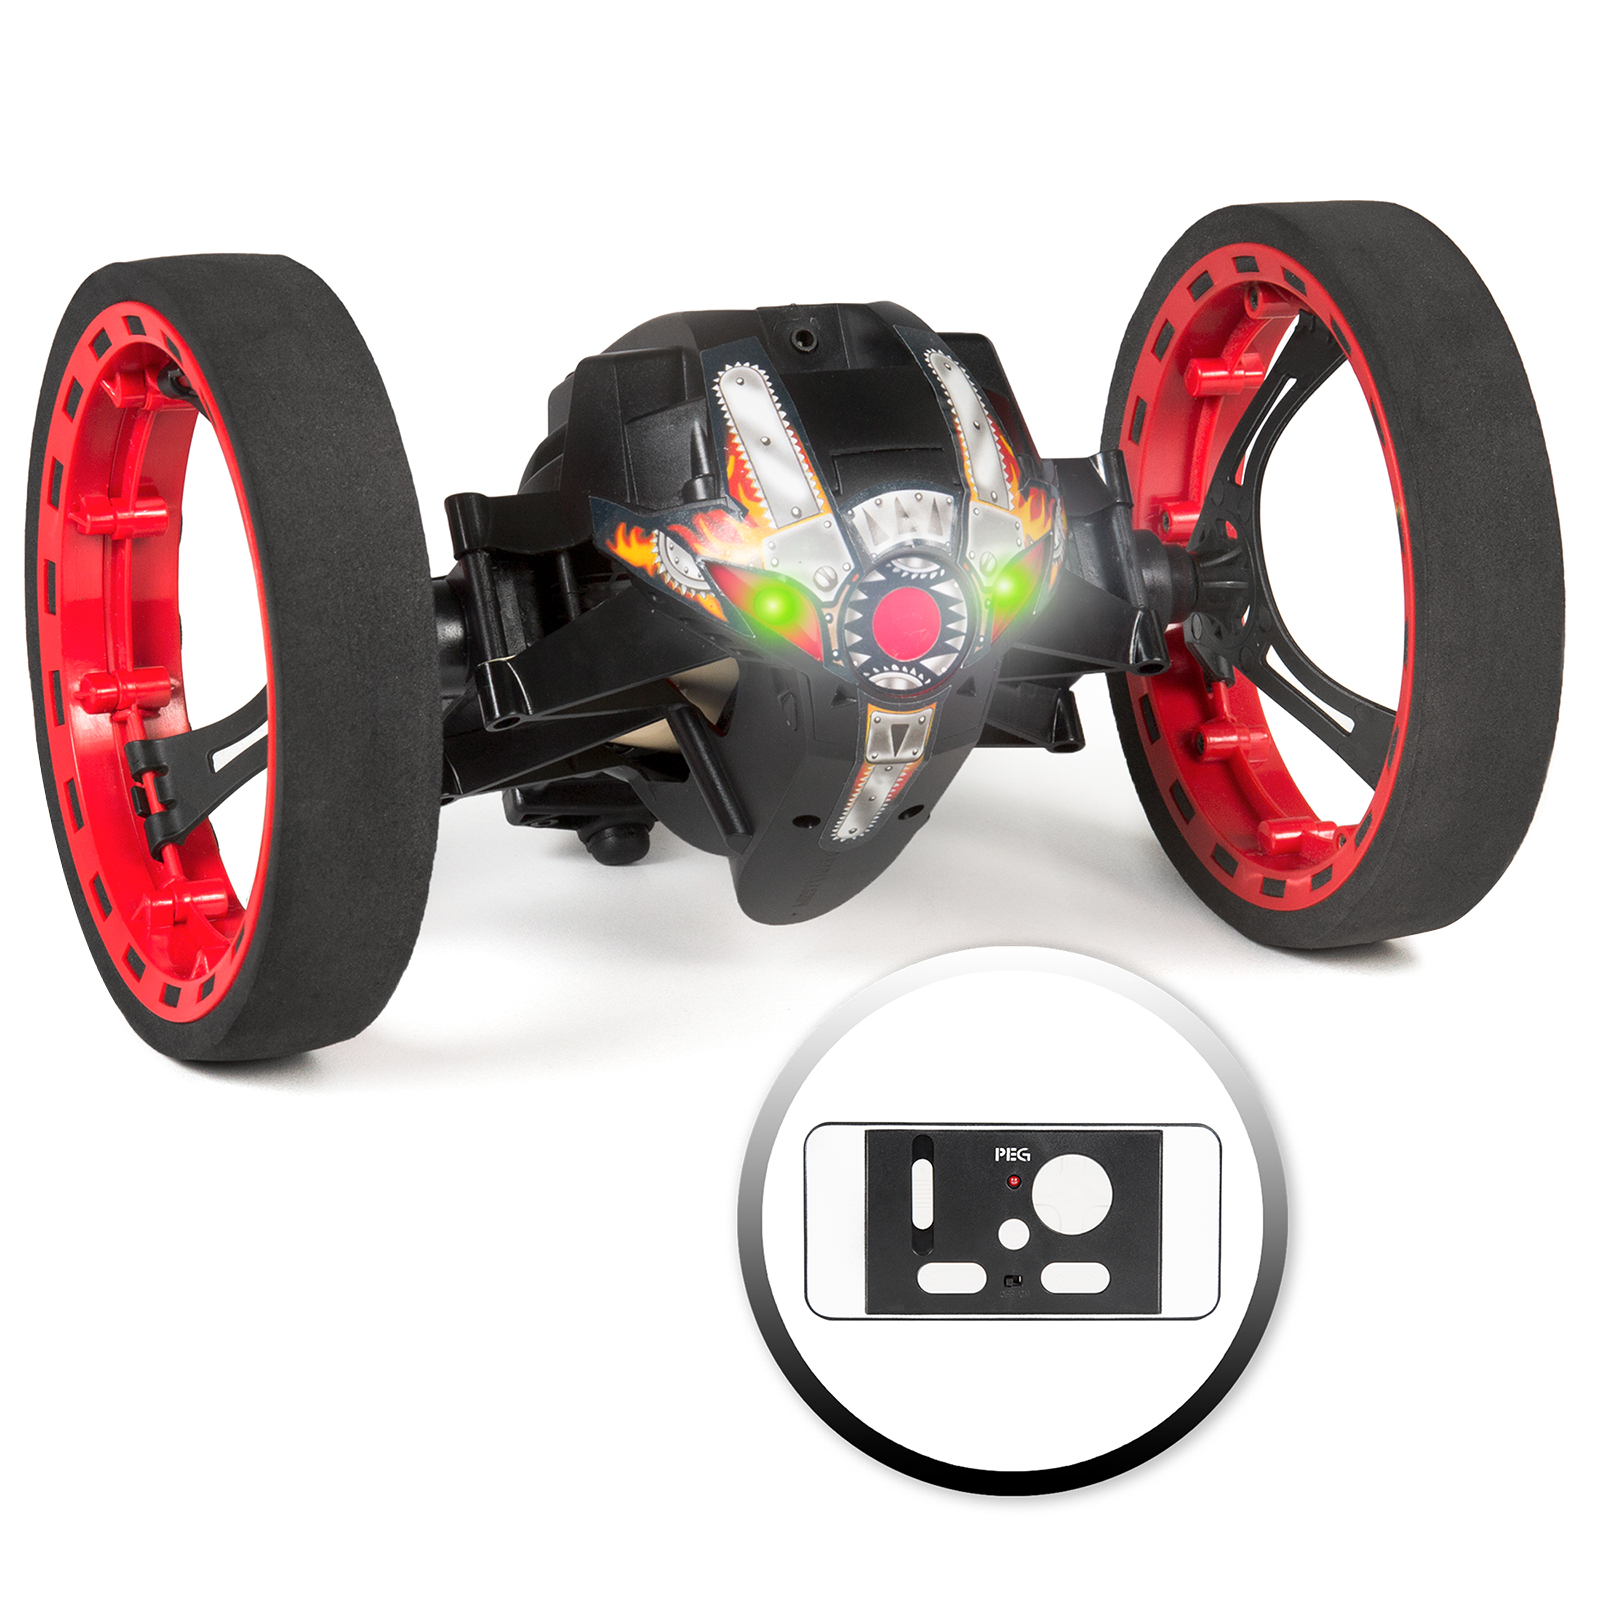 Best Choice Products 2.4GHz Wireless Remote Control Jumping Smart Bounce RC Stunt Car 360 Degrees, USB Charger